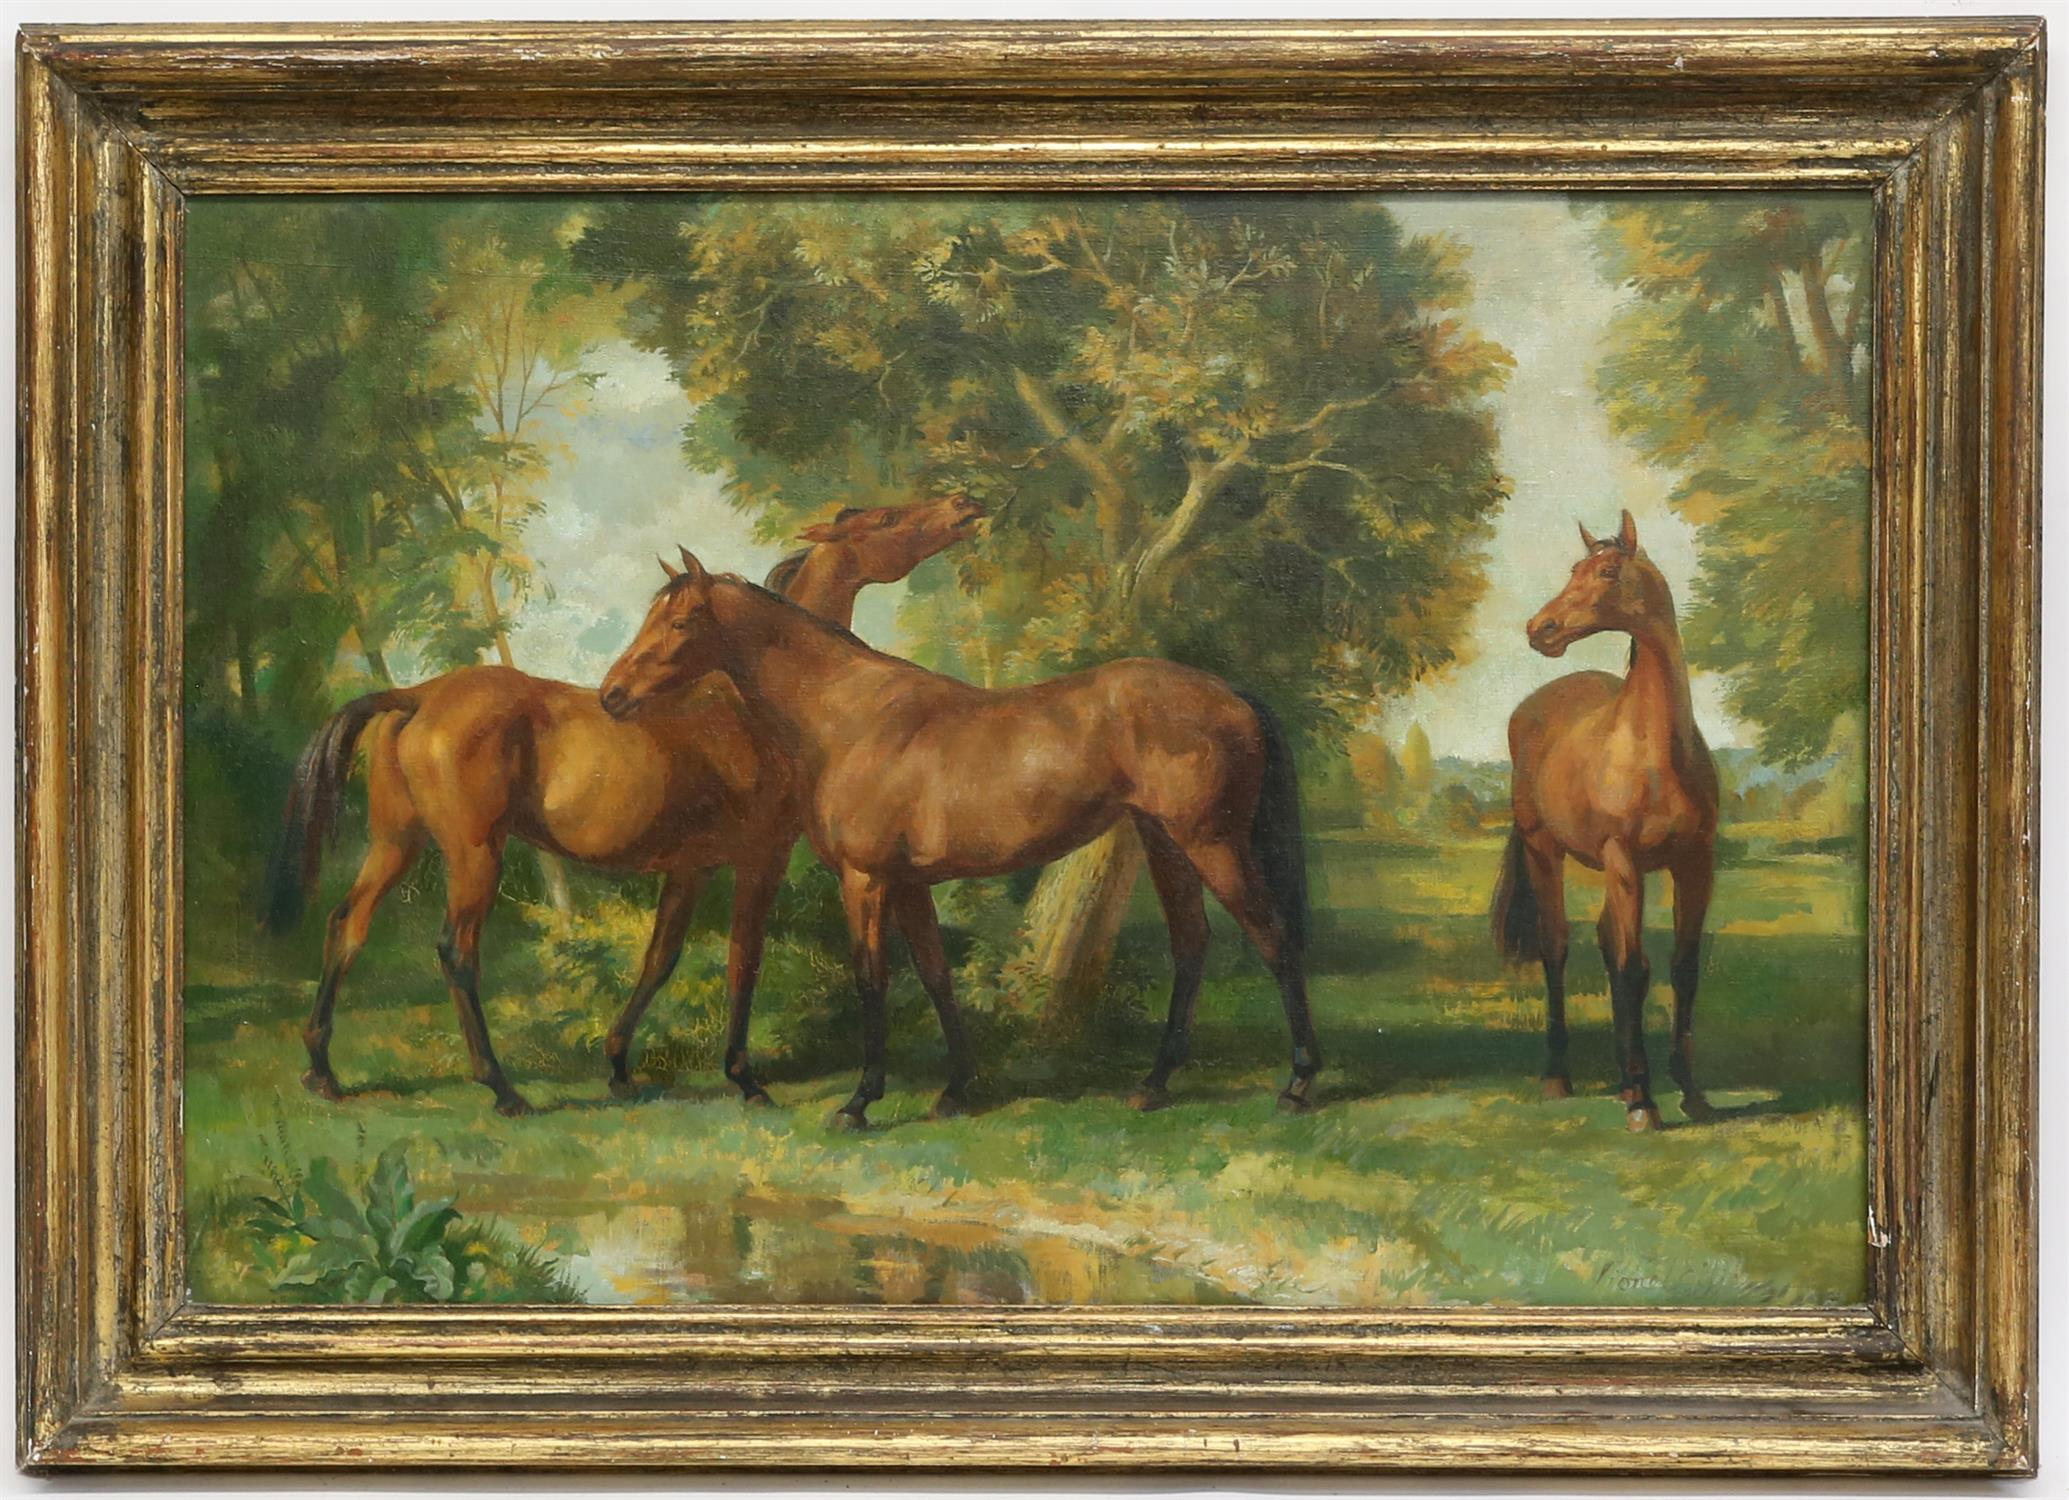 § Lionel Ellis (1903-1988). Three Horses Standing Beneath a Tree. Signed lower right. Oil on canvas. - Image 2 of 4